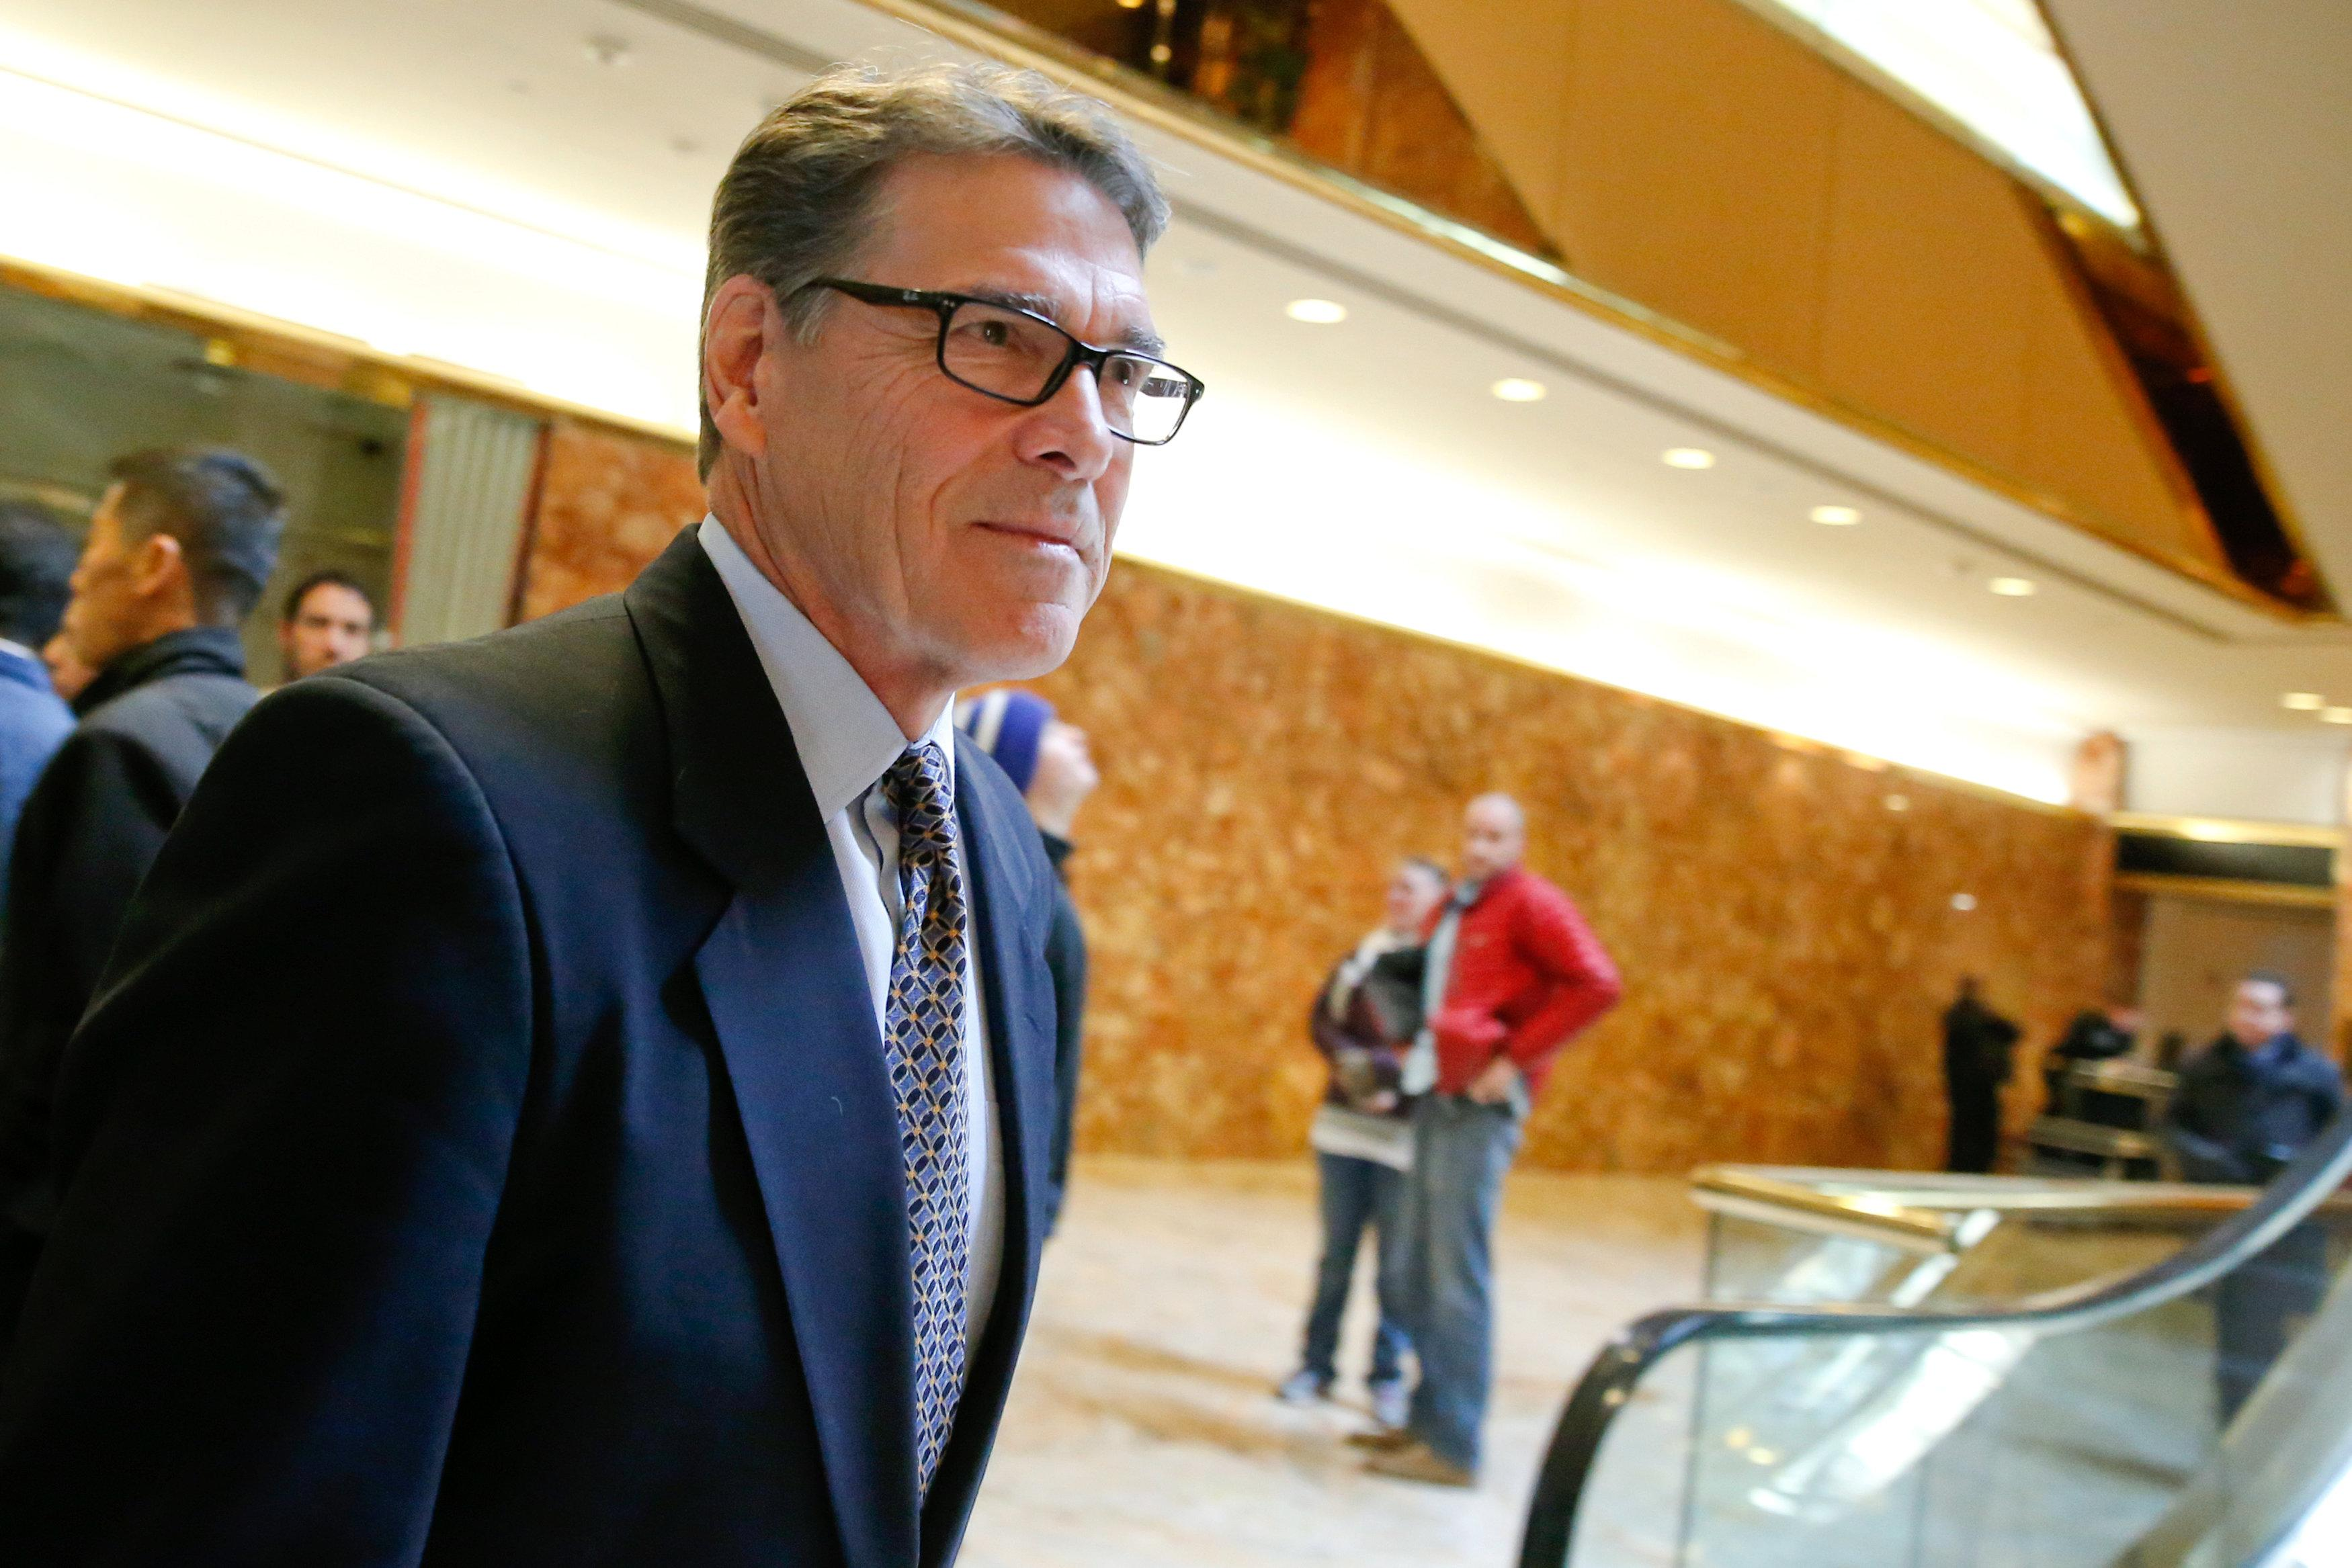 Former Texas Governor Rick Perry exits after meeting with U.S. President-elect Donald Trump at Trump Tower in Manhattan, New York